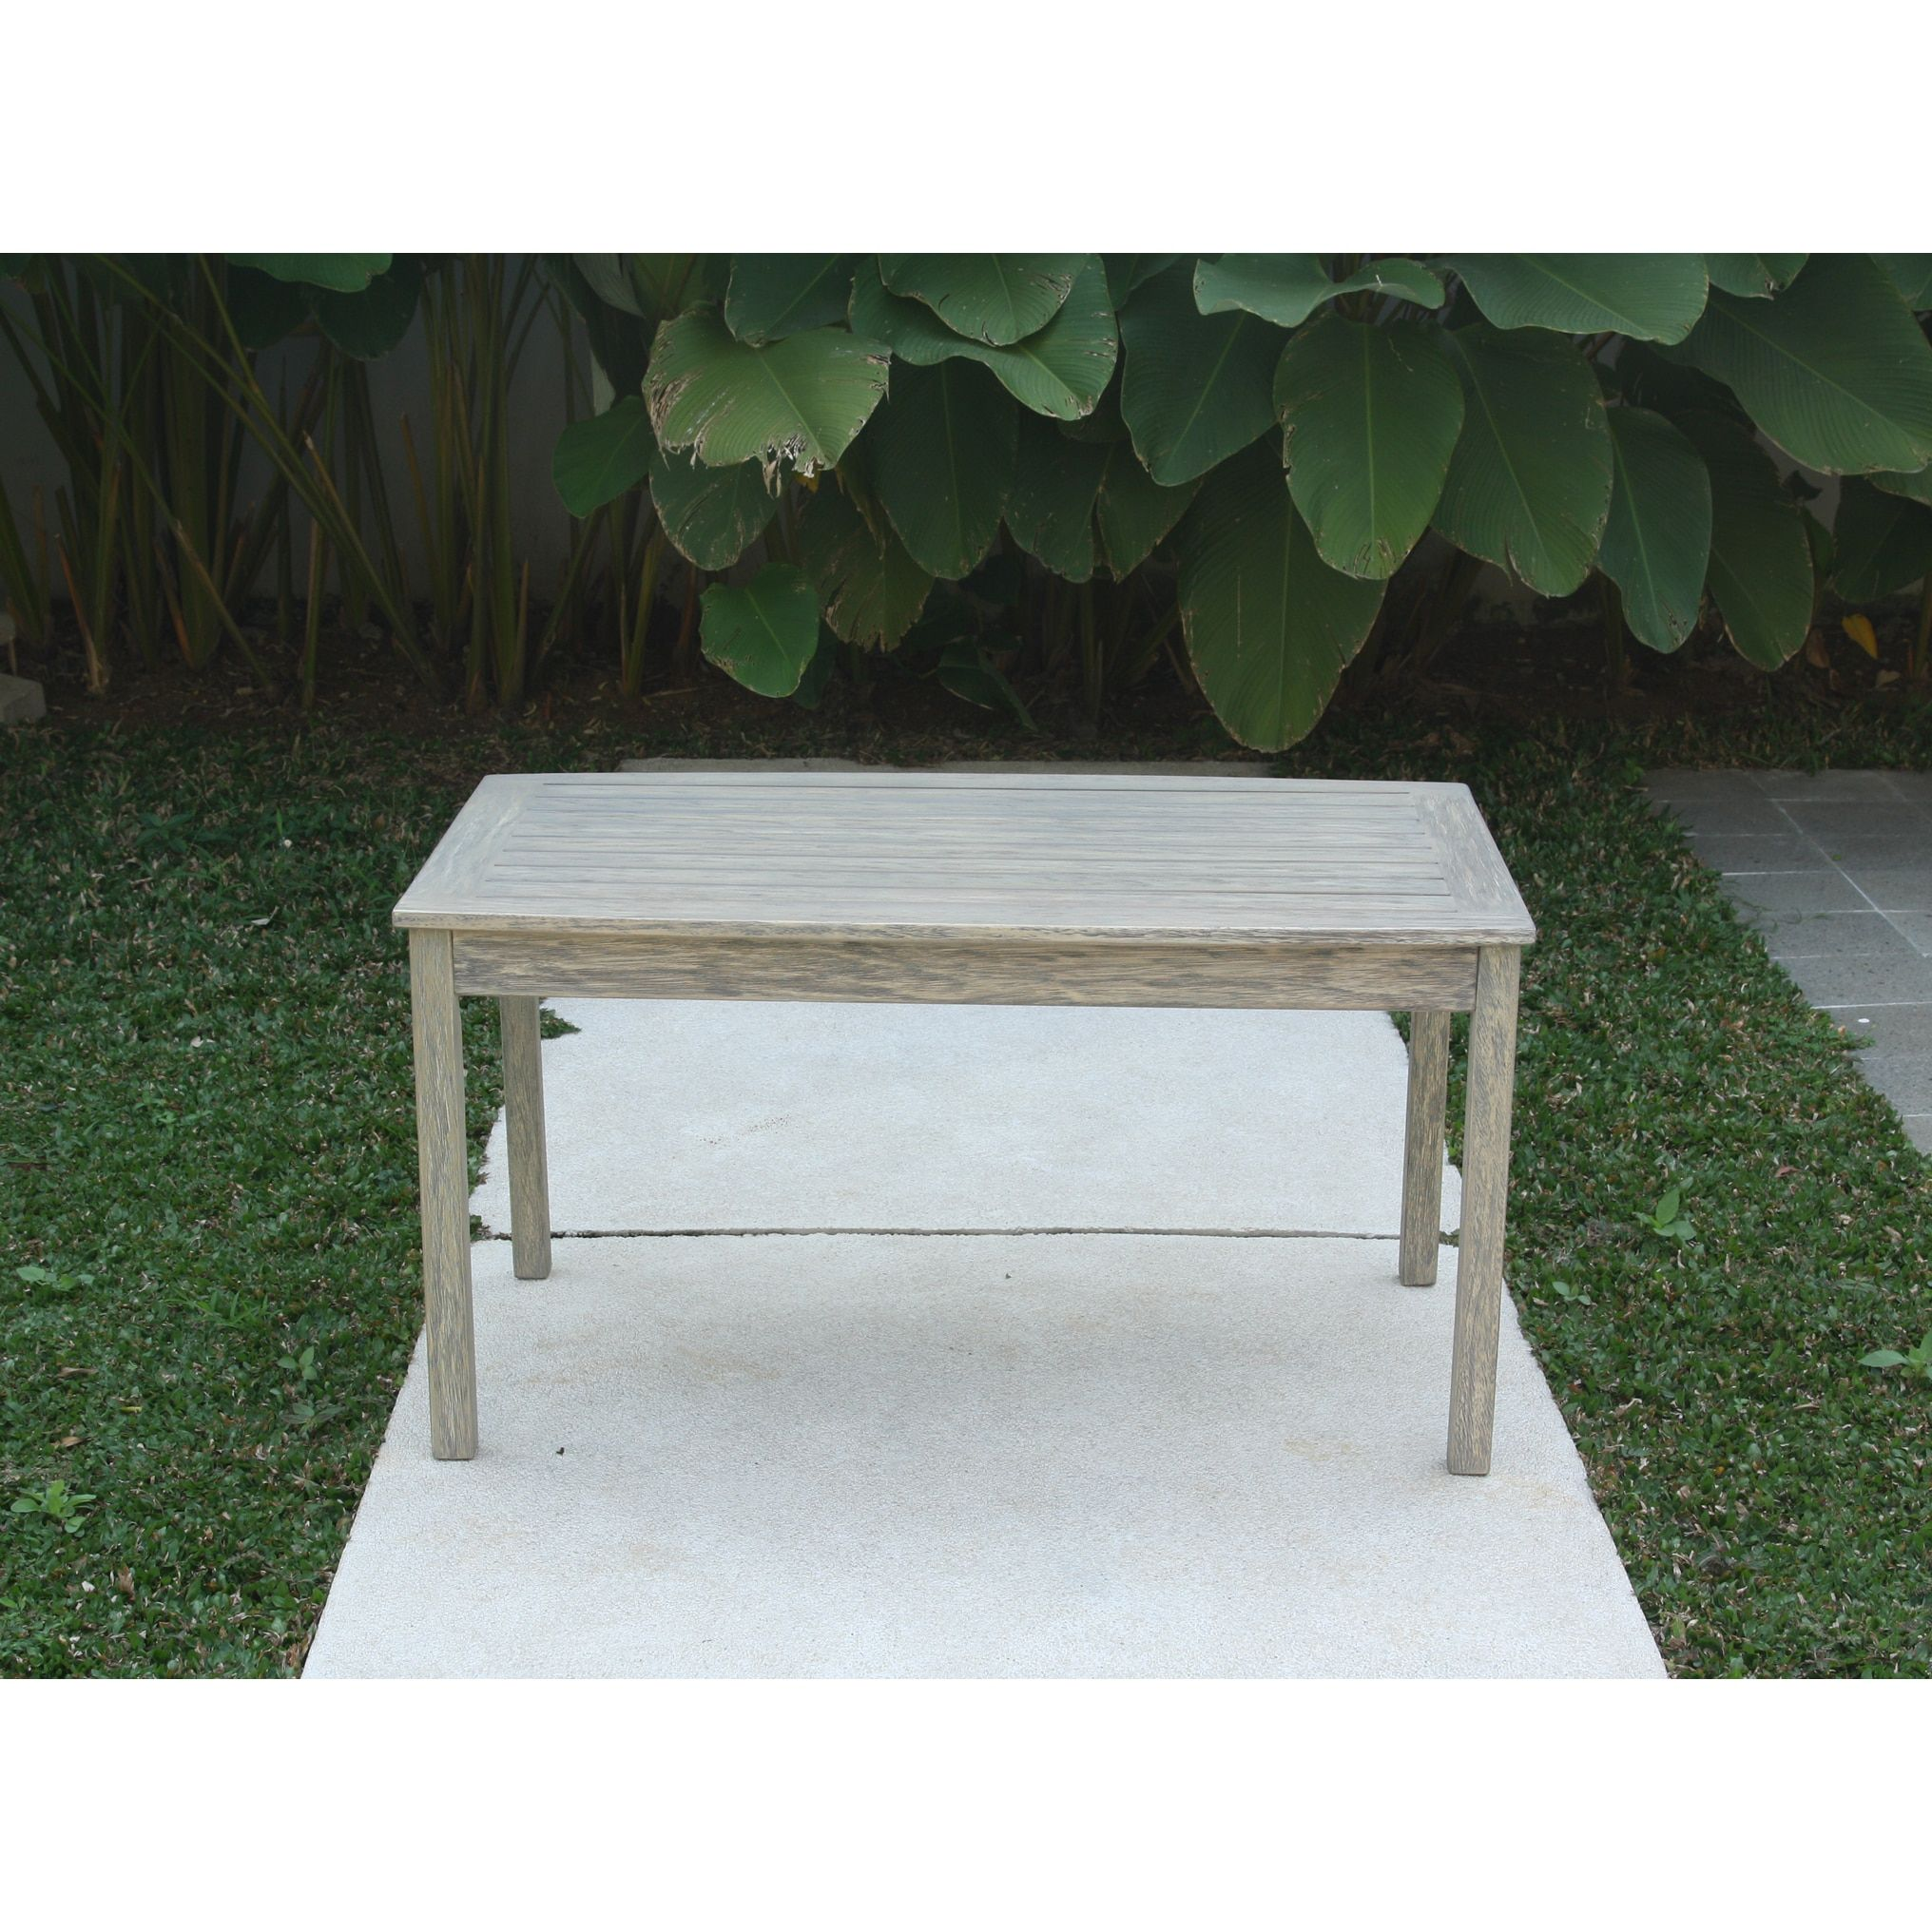 Cambridge casual west lake coffee table weather resistant grey mahogany brown wood patio furniture